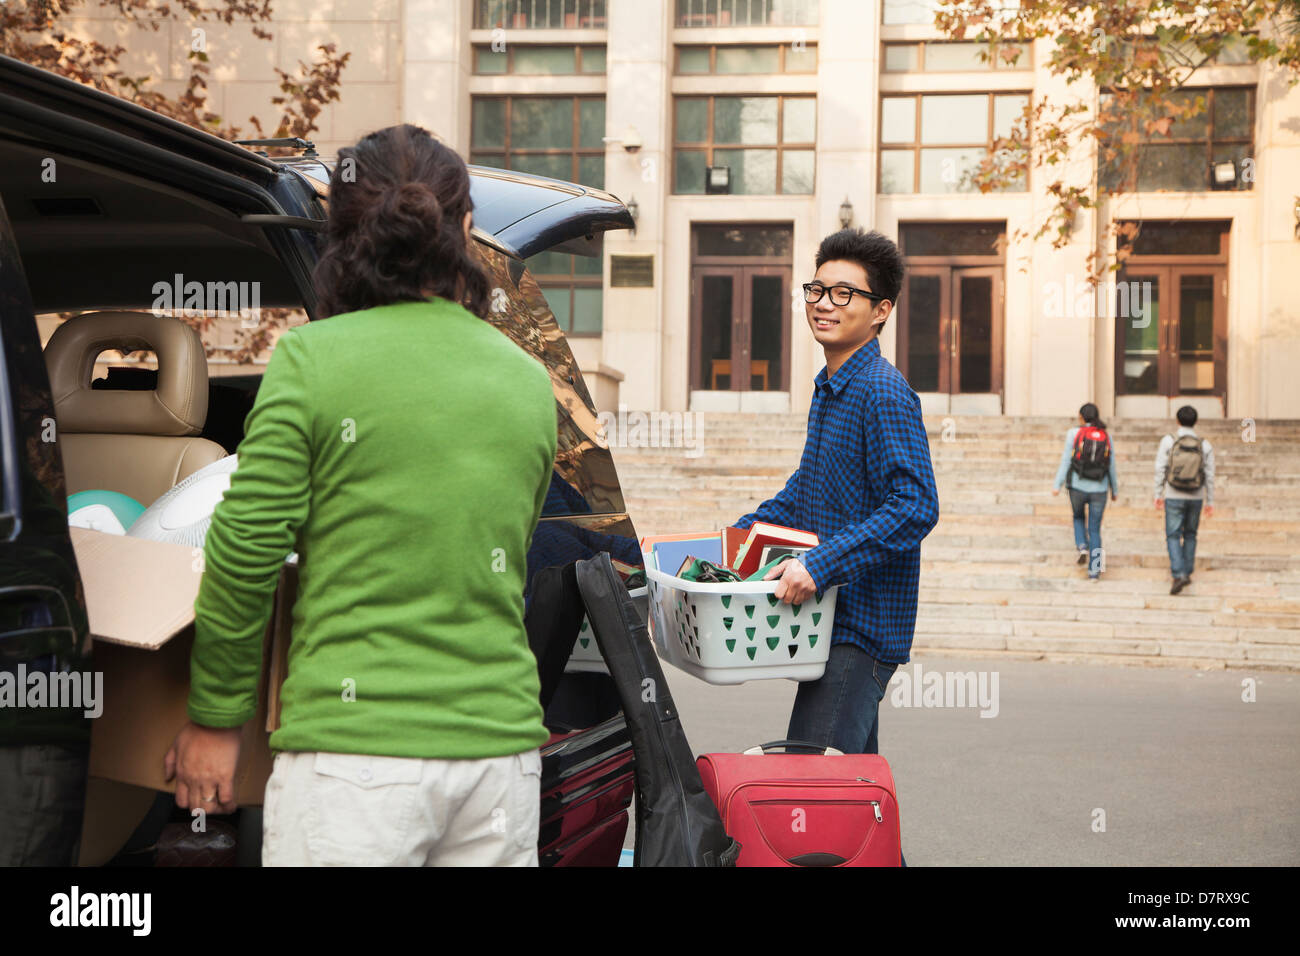 Young man moving into dormitory on college campus - Stock Image